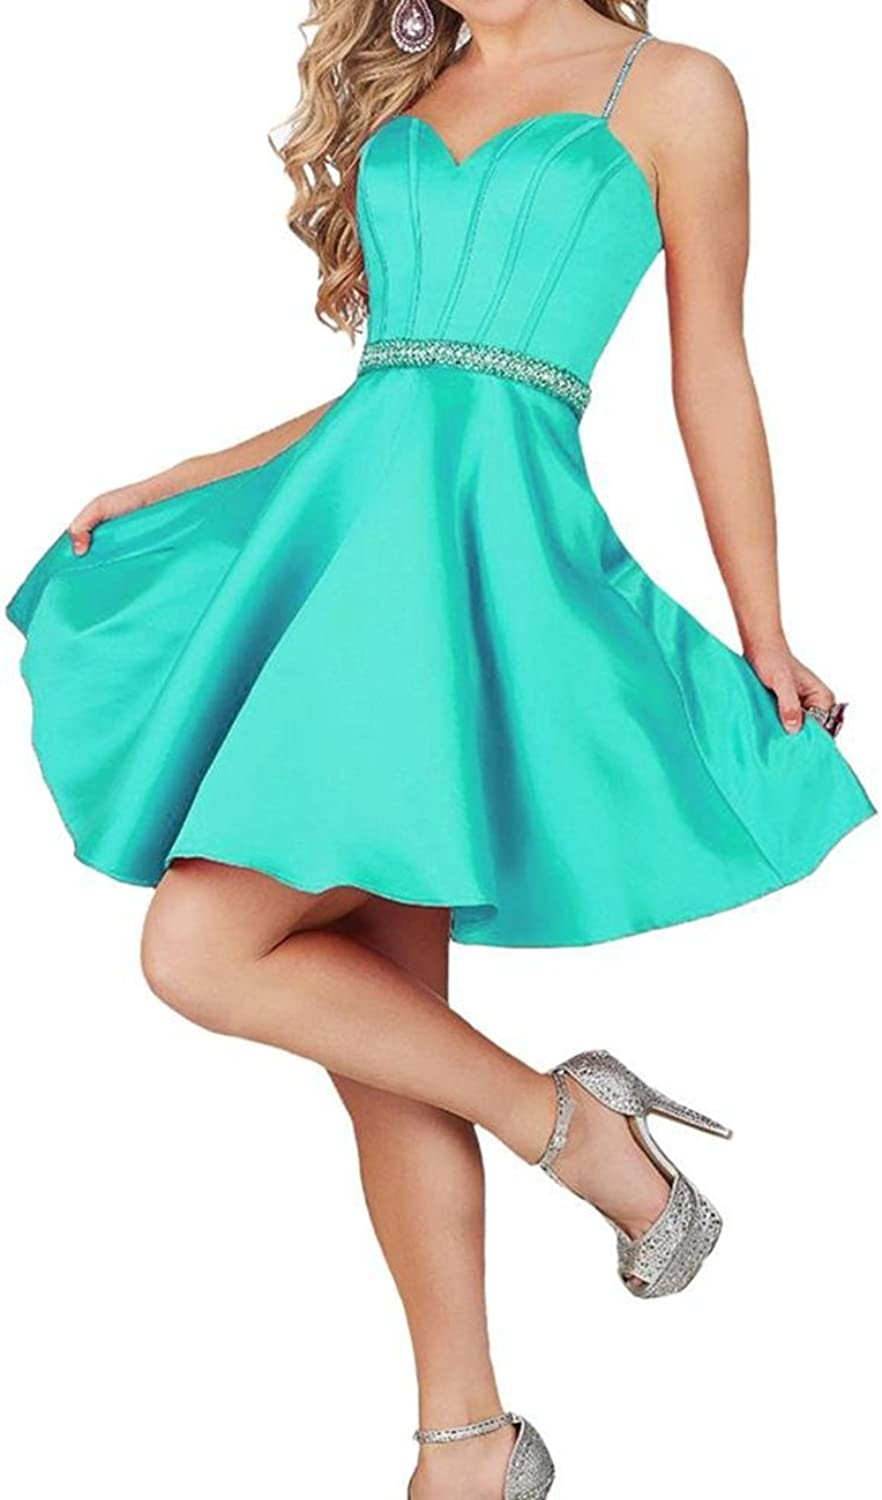 YOUTODRE Beaded Homecoming Dress Spaghetti Strap Short Cocktail Prom Dresses for Teens